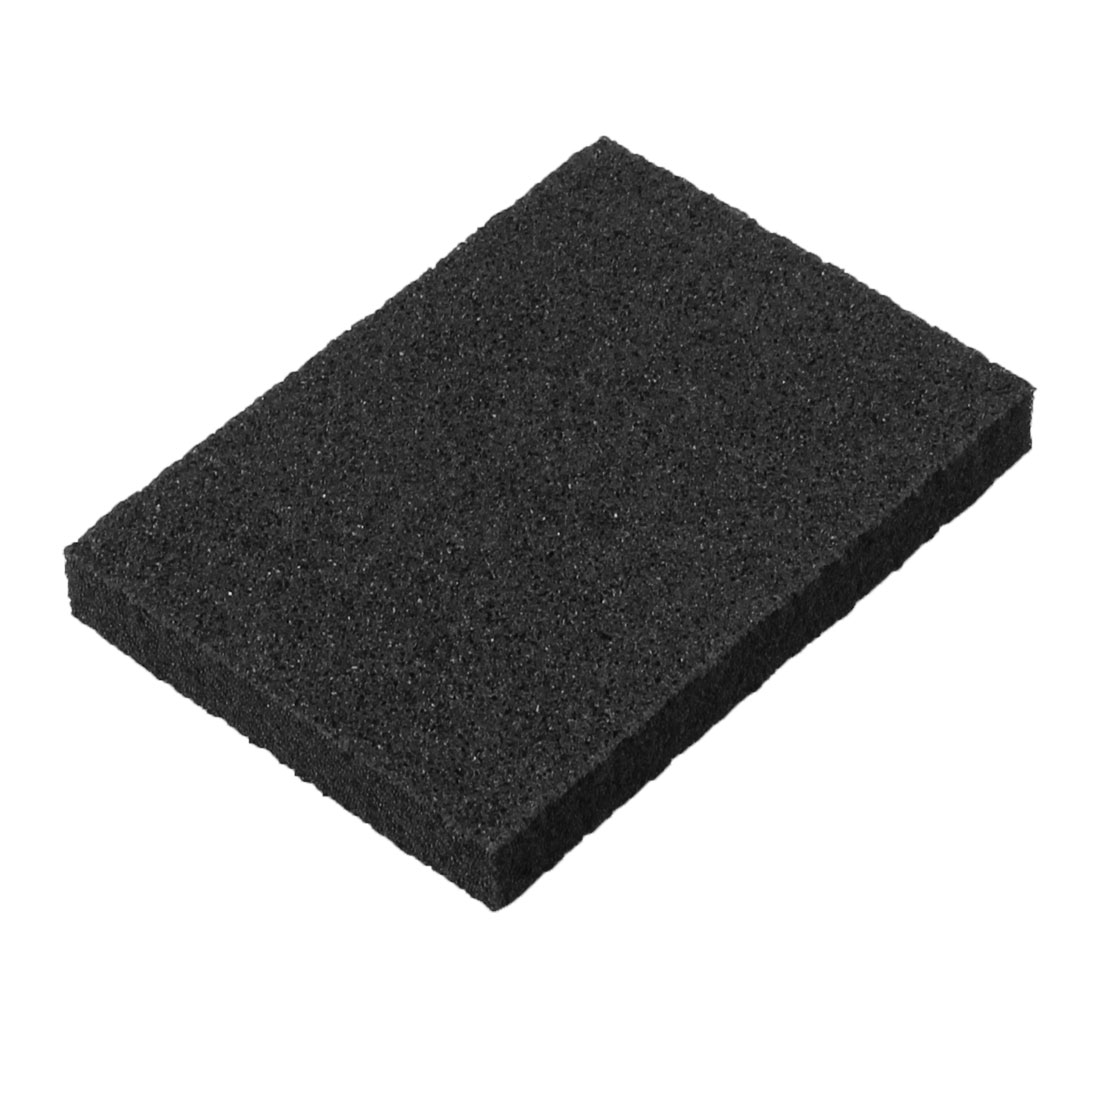 Household Kitchen Sponge Rub Cleaning Tool Rust Decontamination Scrub Pad 2 Pcs